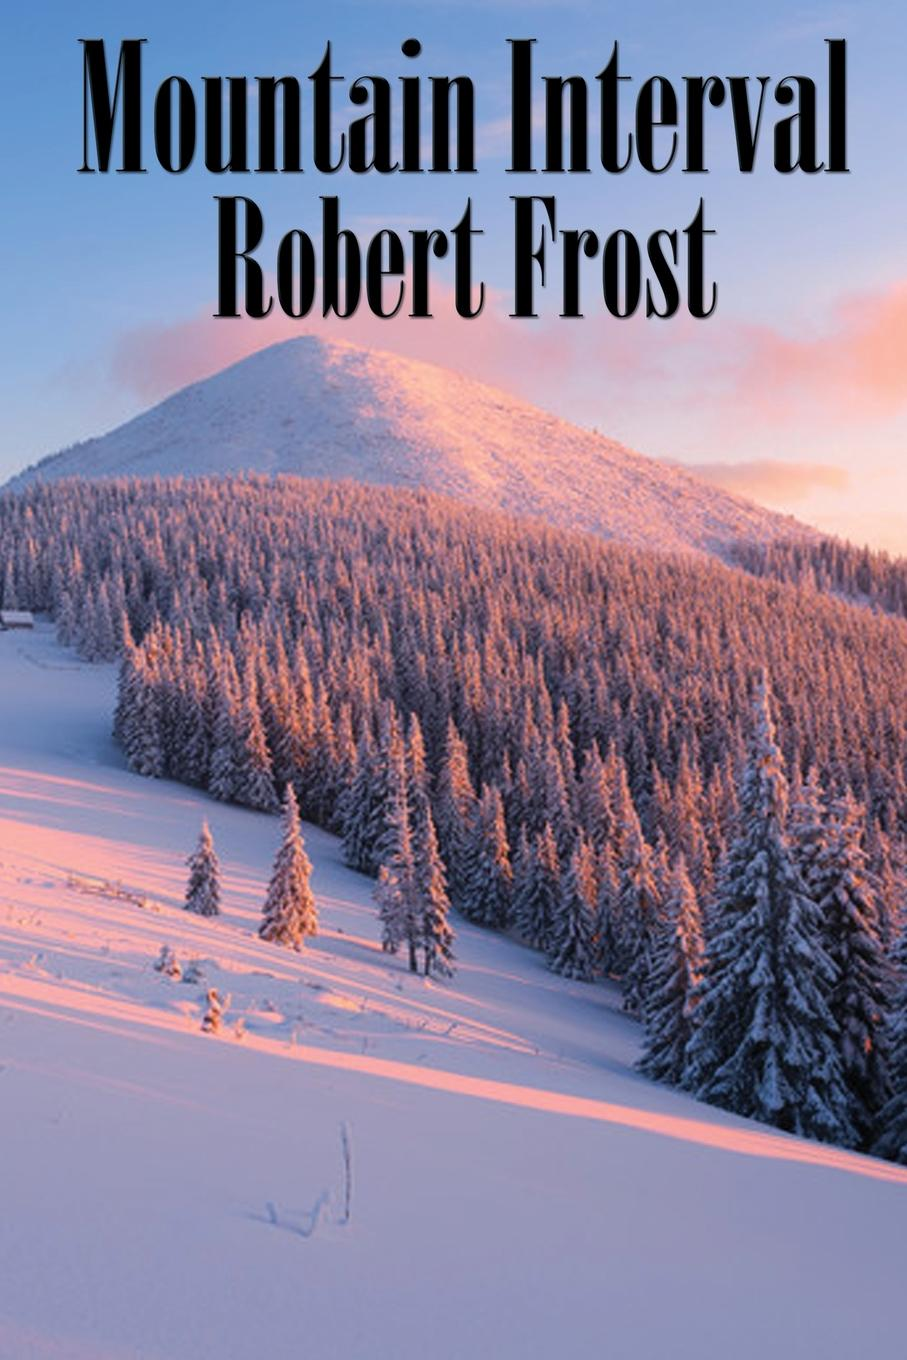 Robert Frost Mountain Interval robert frost the road not taken birches and other poems